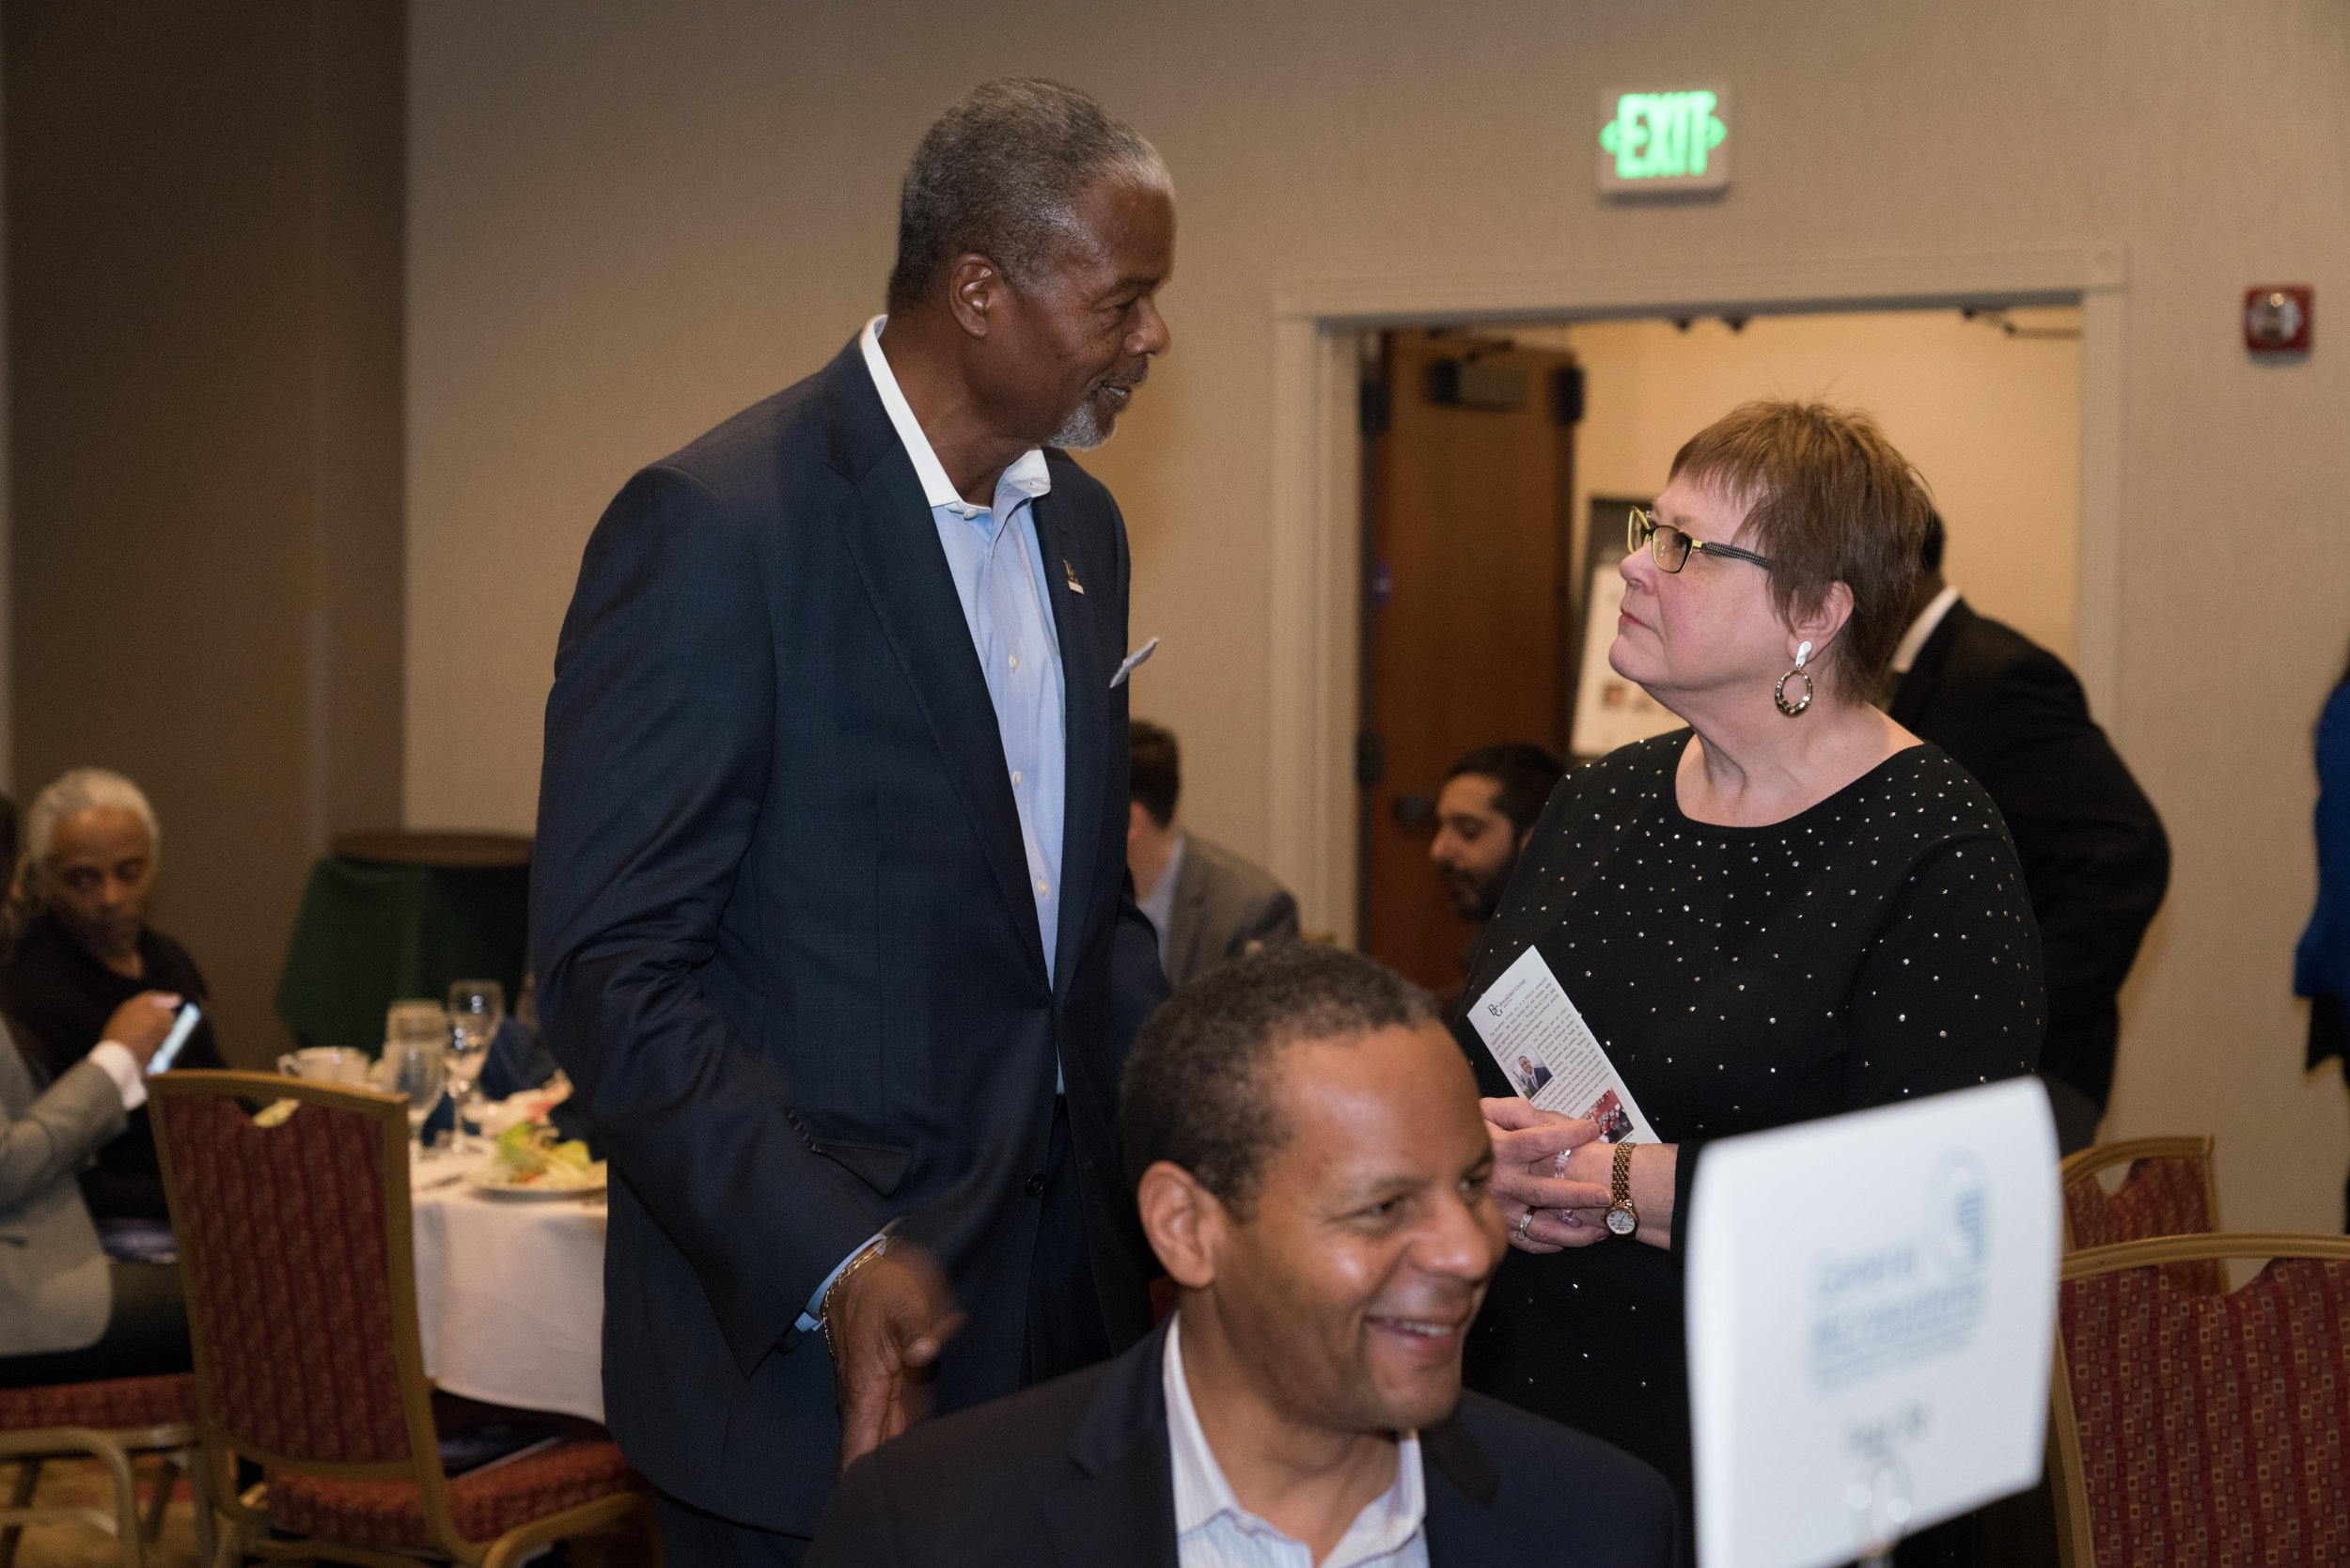 007 - 2018 Annual Awards Dinner Photo by Mike Nakamura